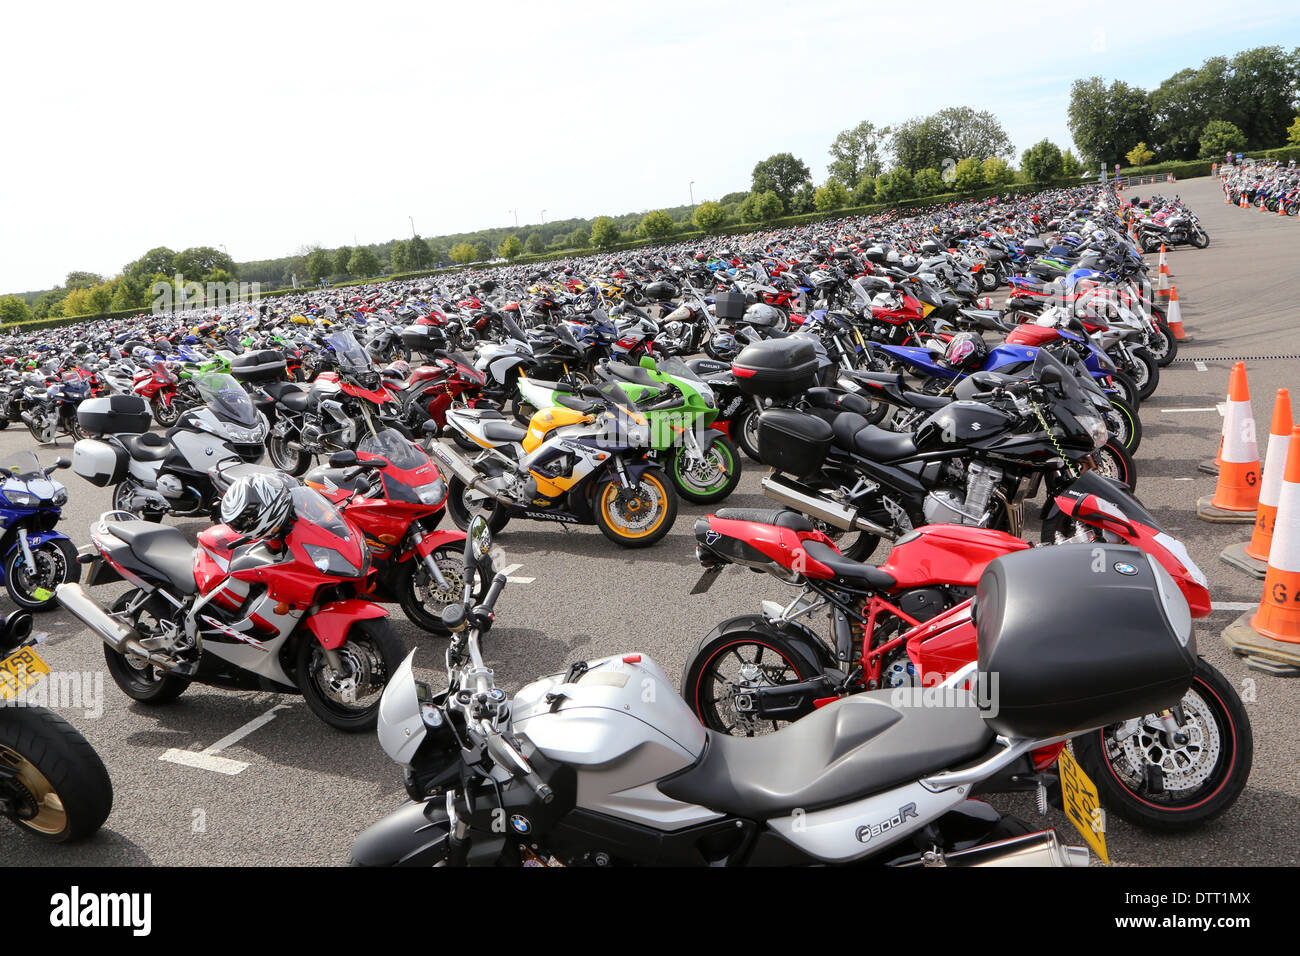 Bike park at Silverstone Moto GP 2013 - Stock Image